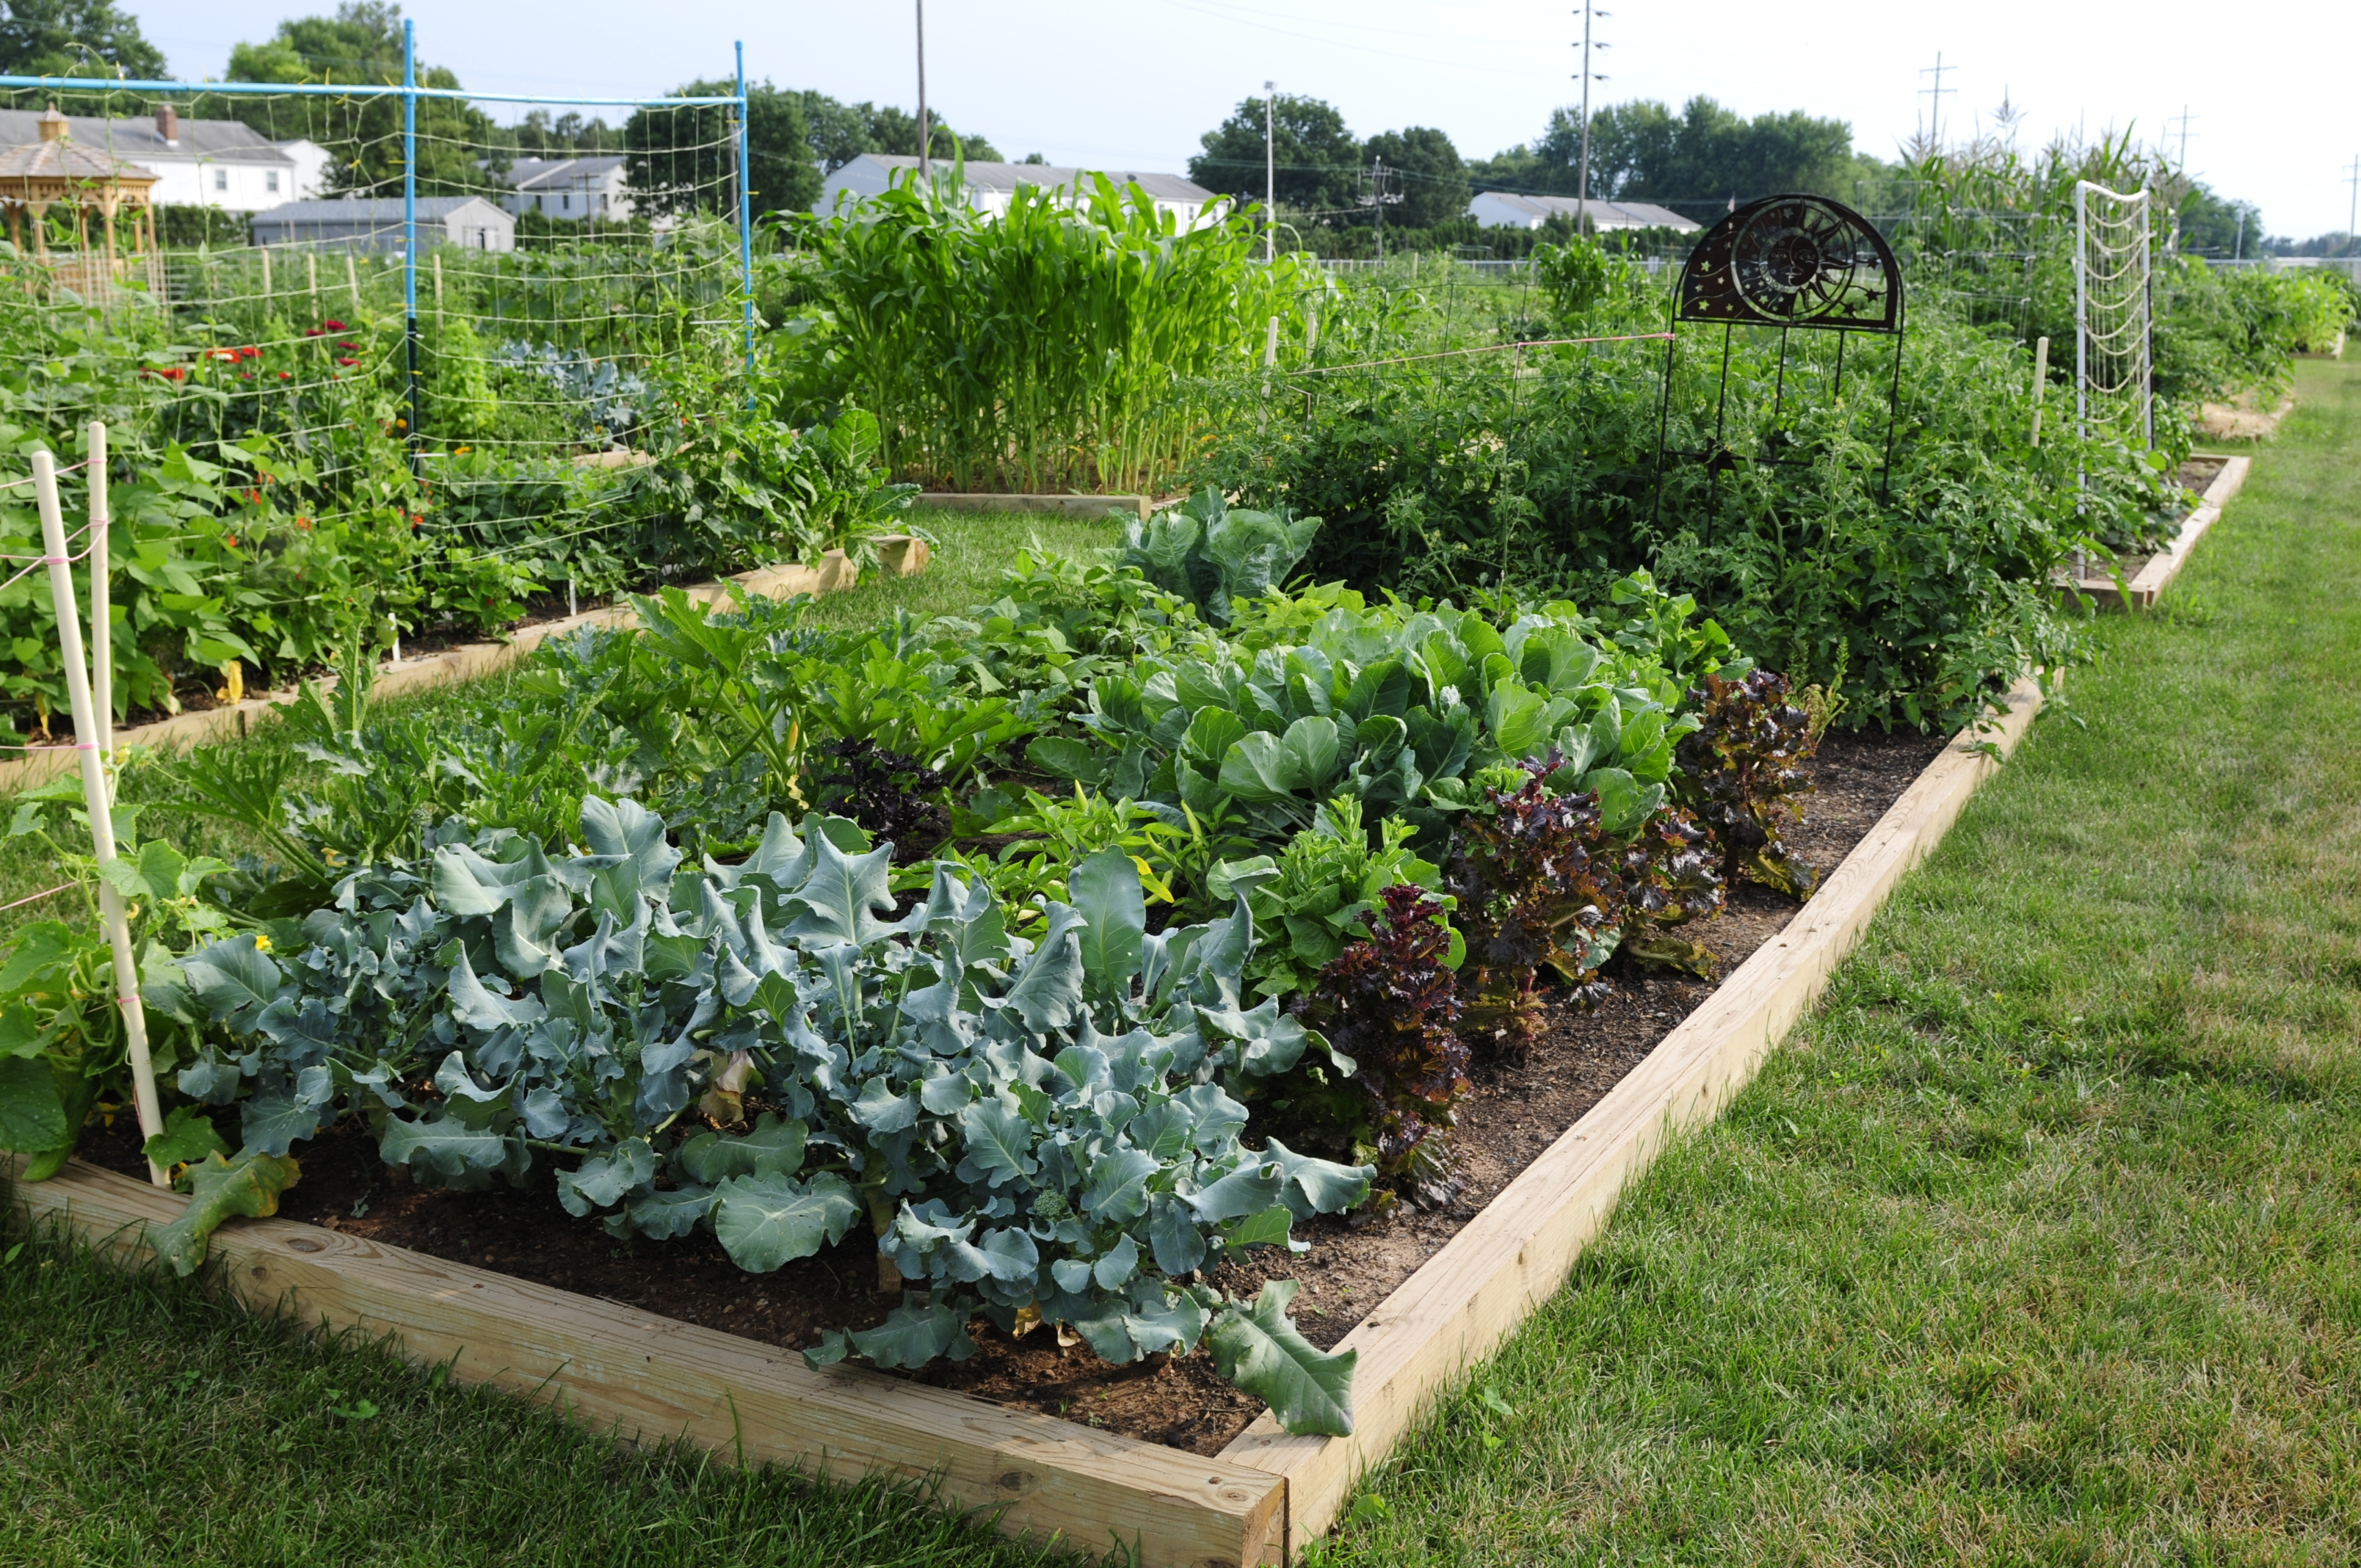 Free Money And Help For A School Garden Garden Housecalls: garden club program ideas